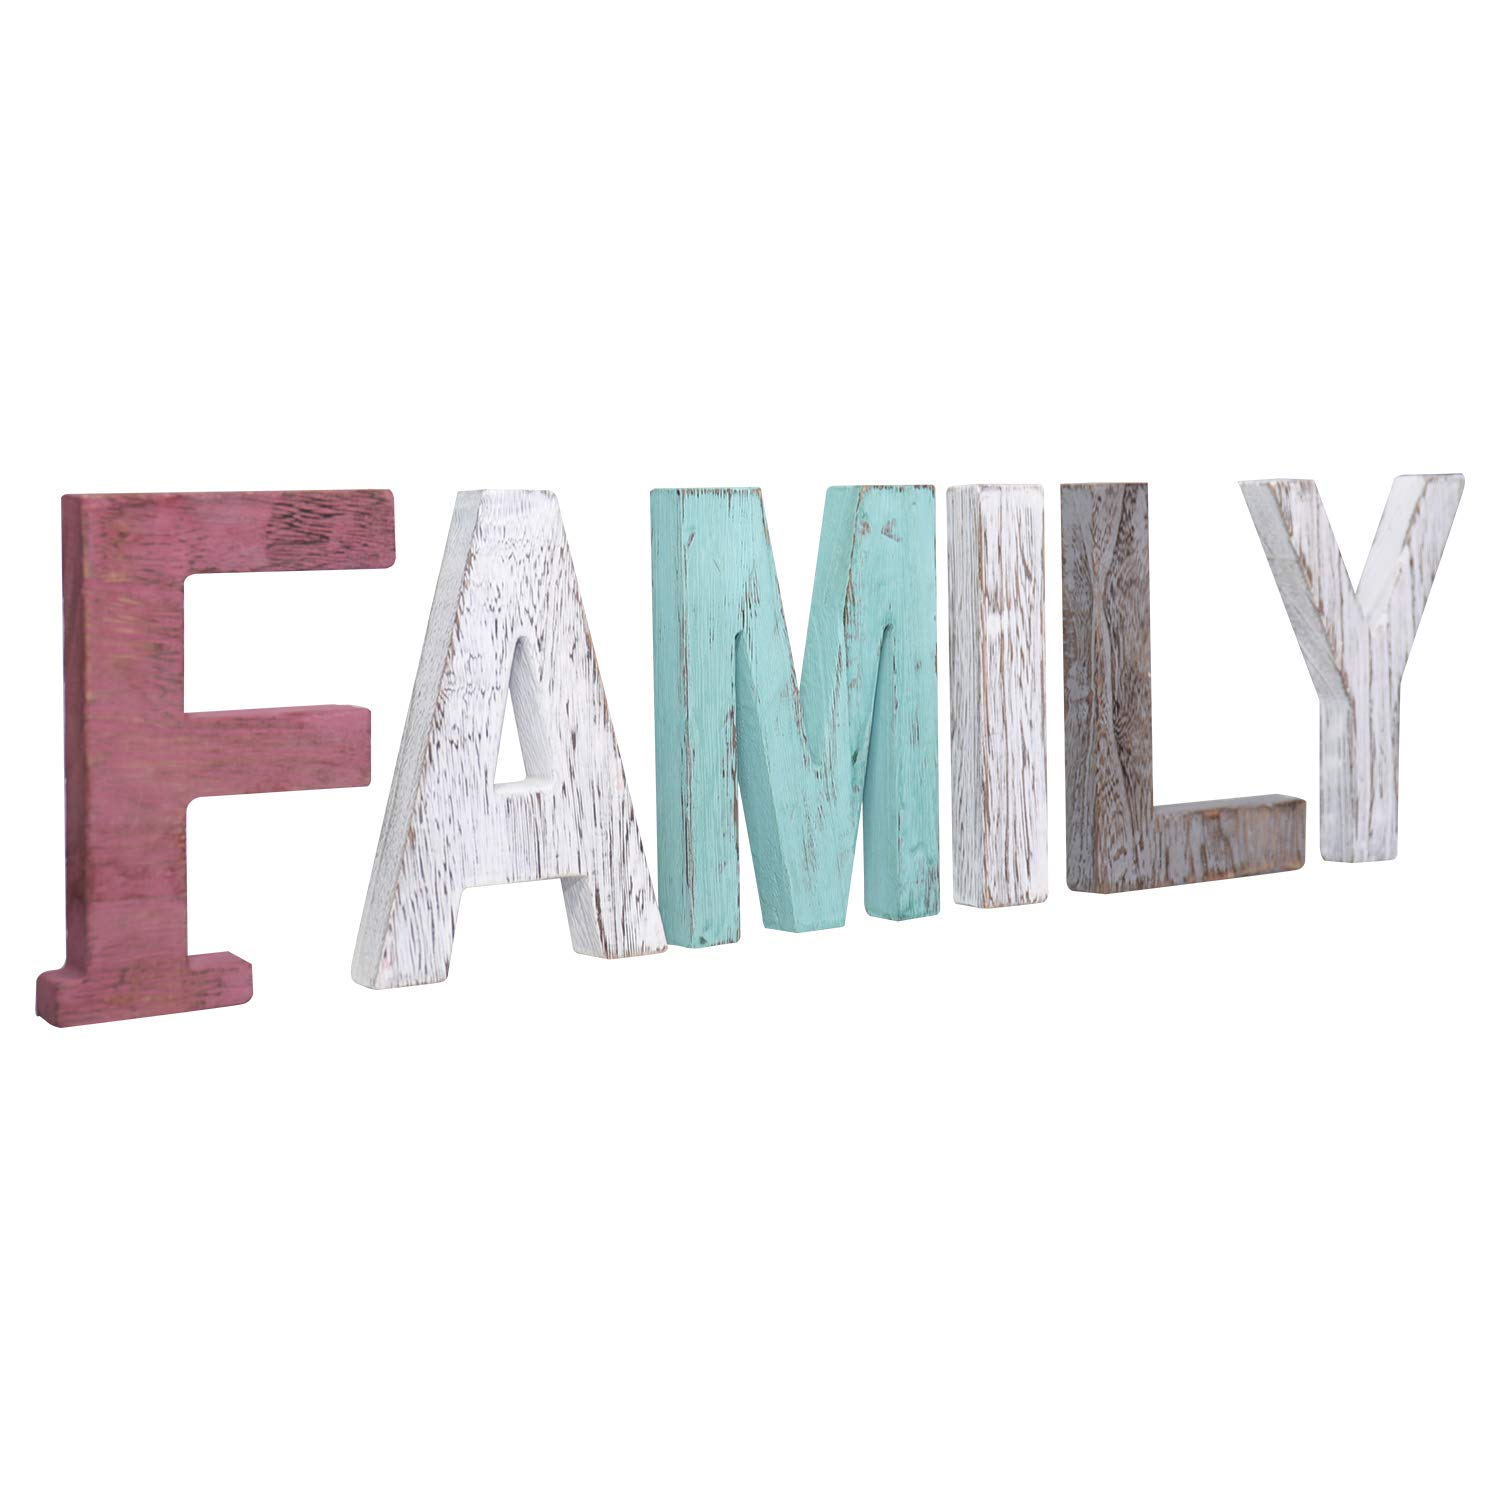 Y&Me Rustic Wood Family Sign, Decorative Wooden Block Word Signs, Freestanding Wooden Letters, Rustic Family Signs for Home Decor, 24.8 x 6 Inch, Multicolor (Family)